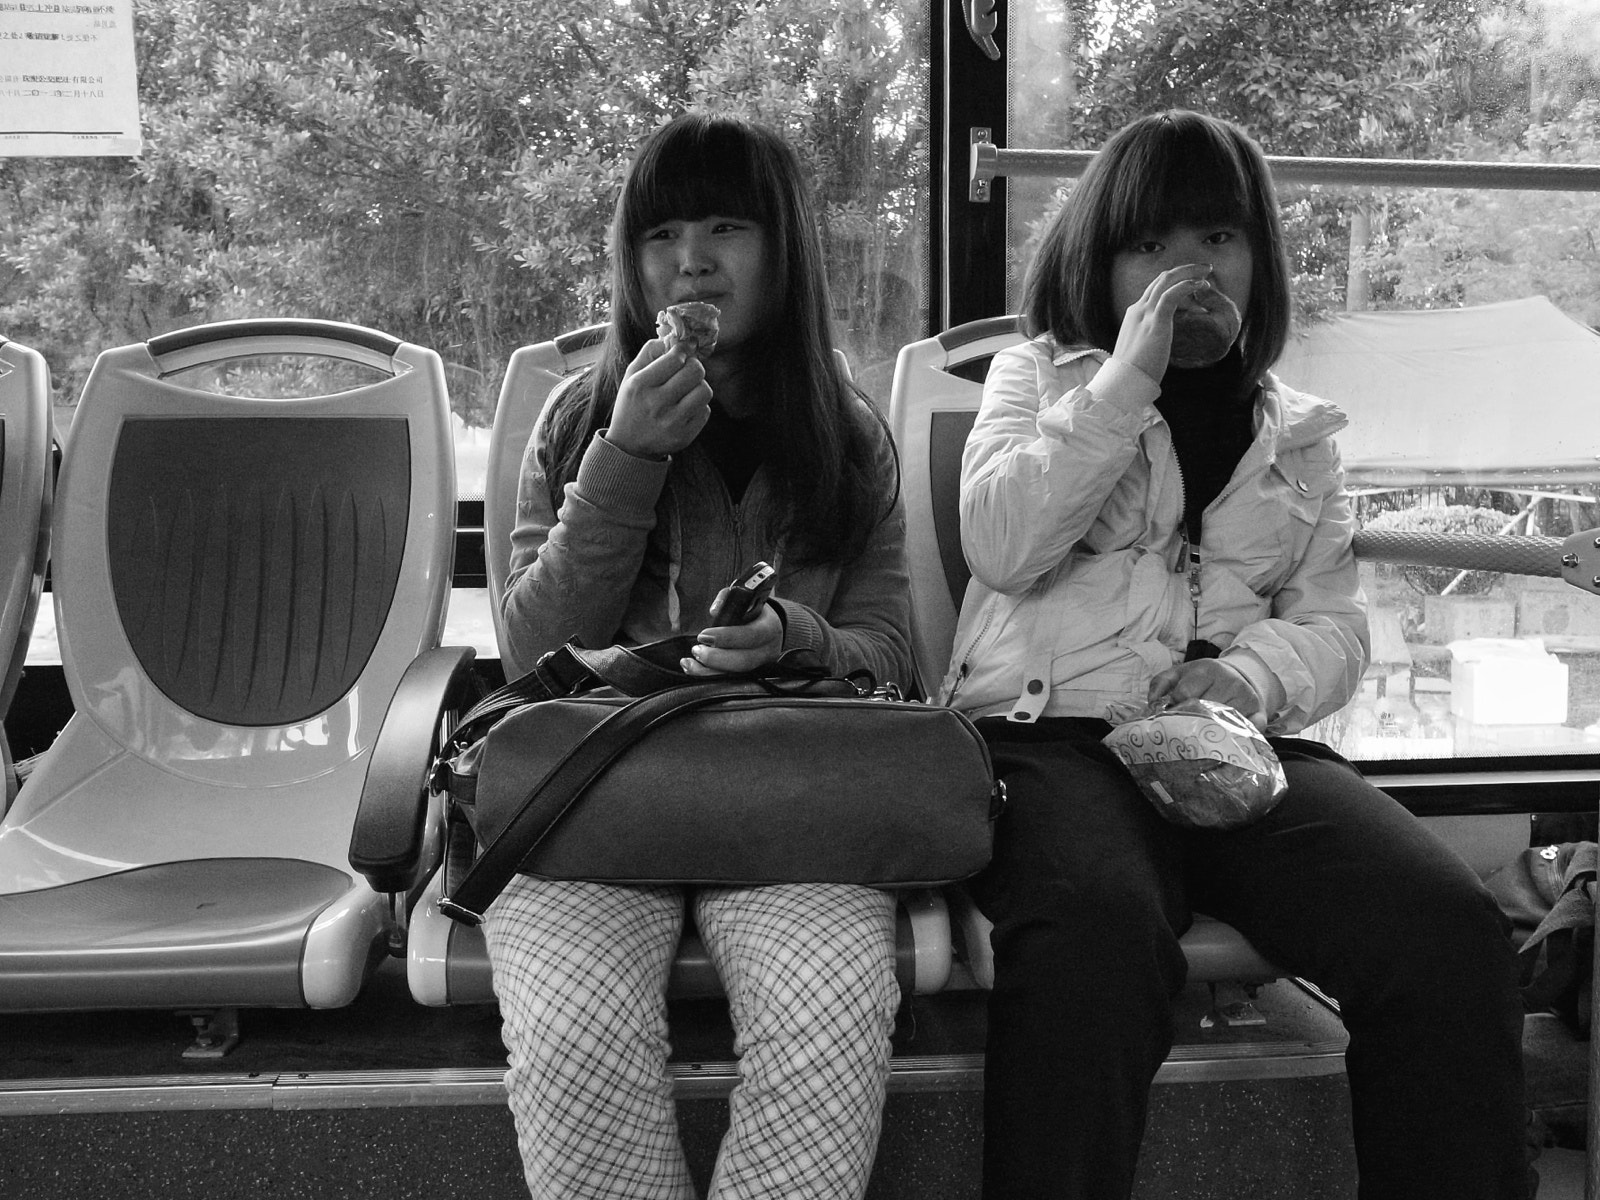 Photograph Chinese girls in a local bus by Michael Østergaard Johansen on 500px